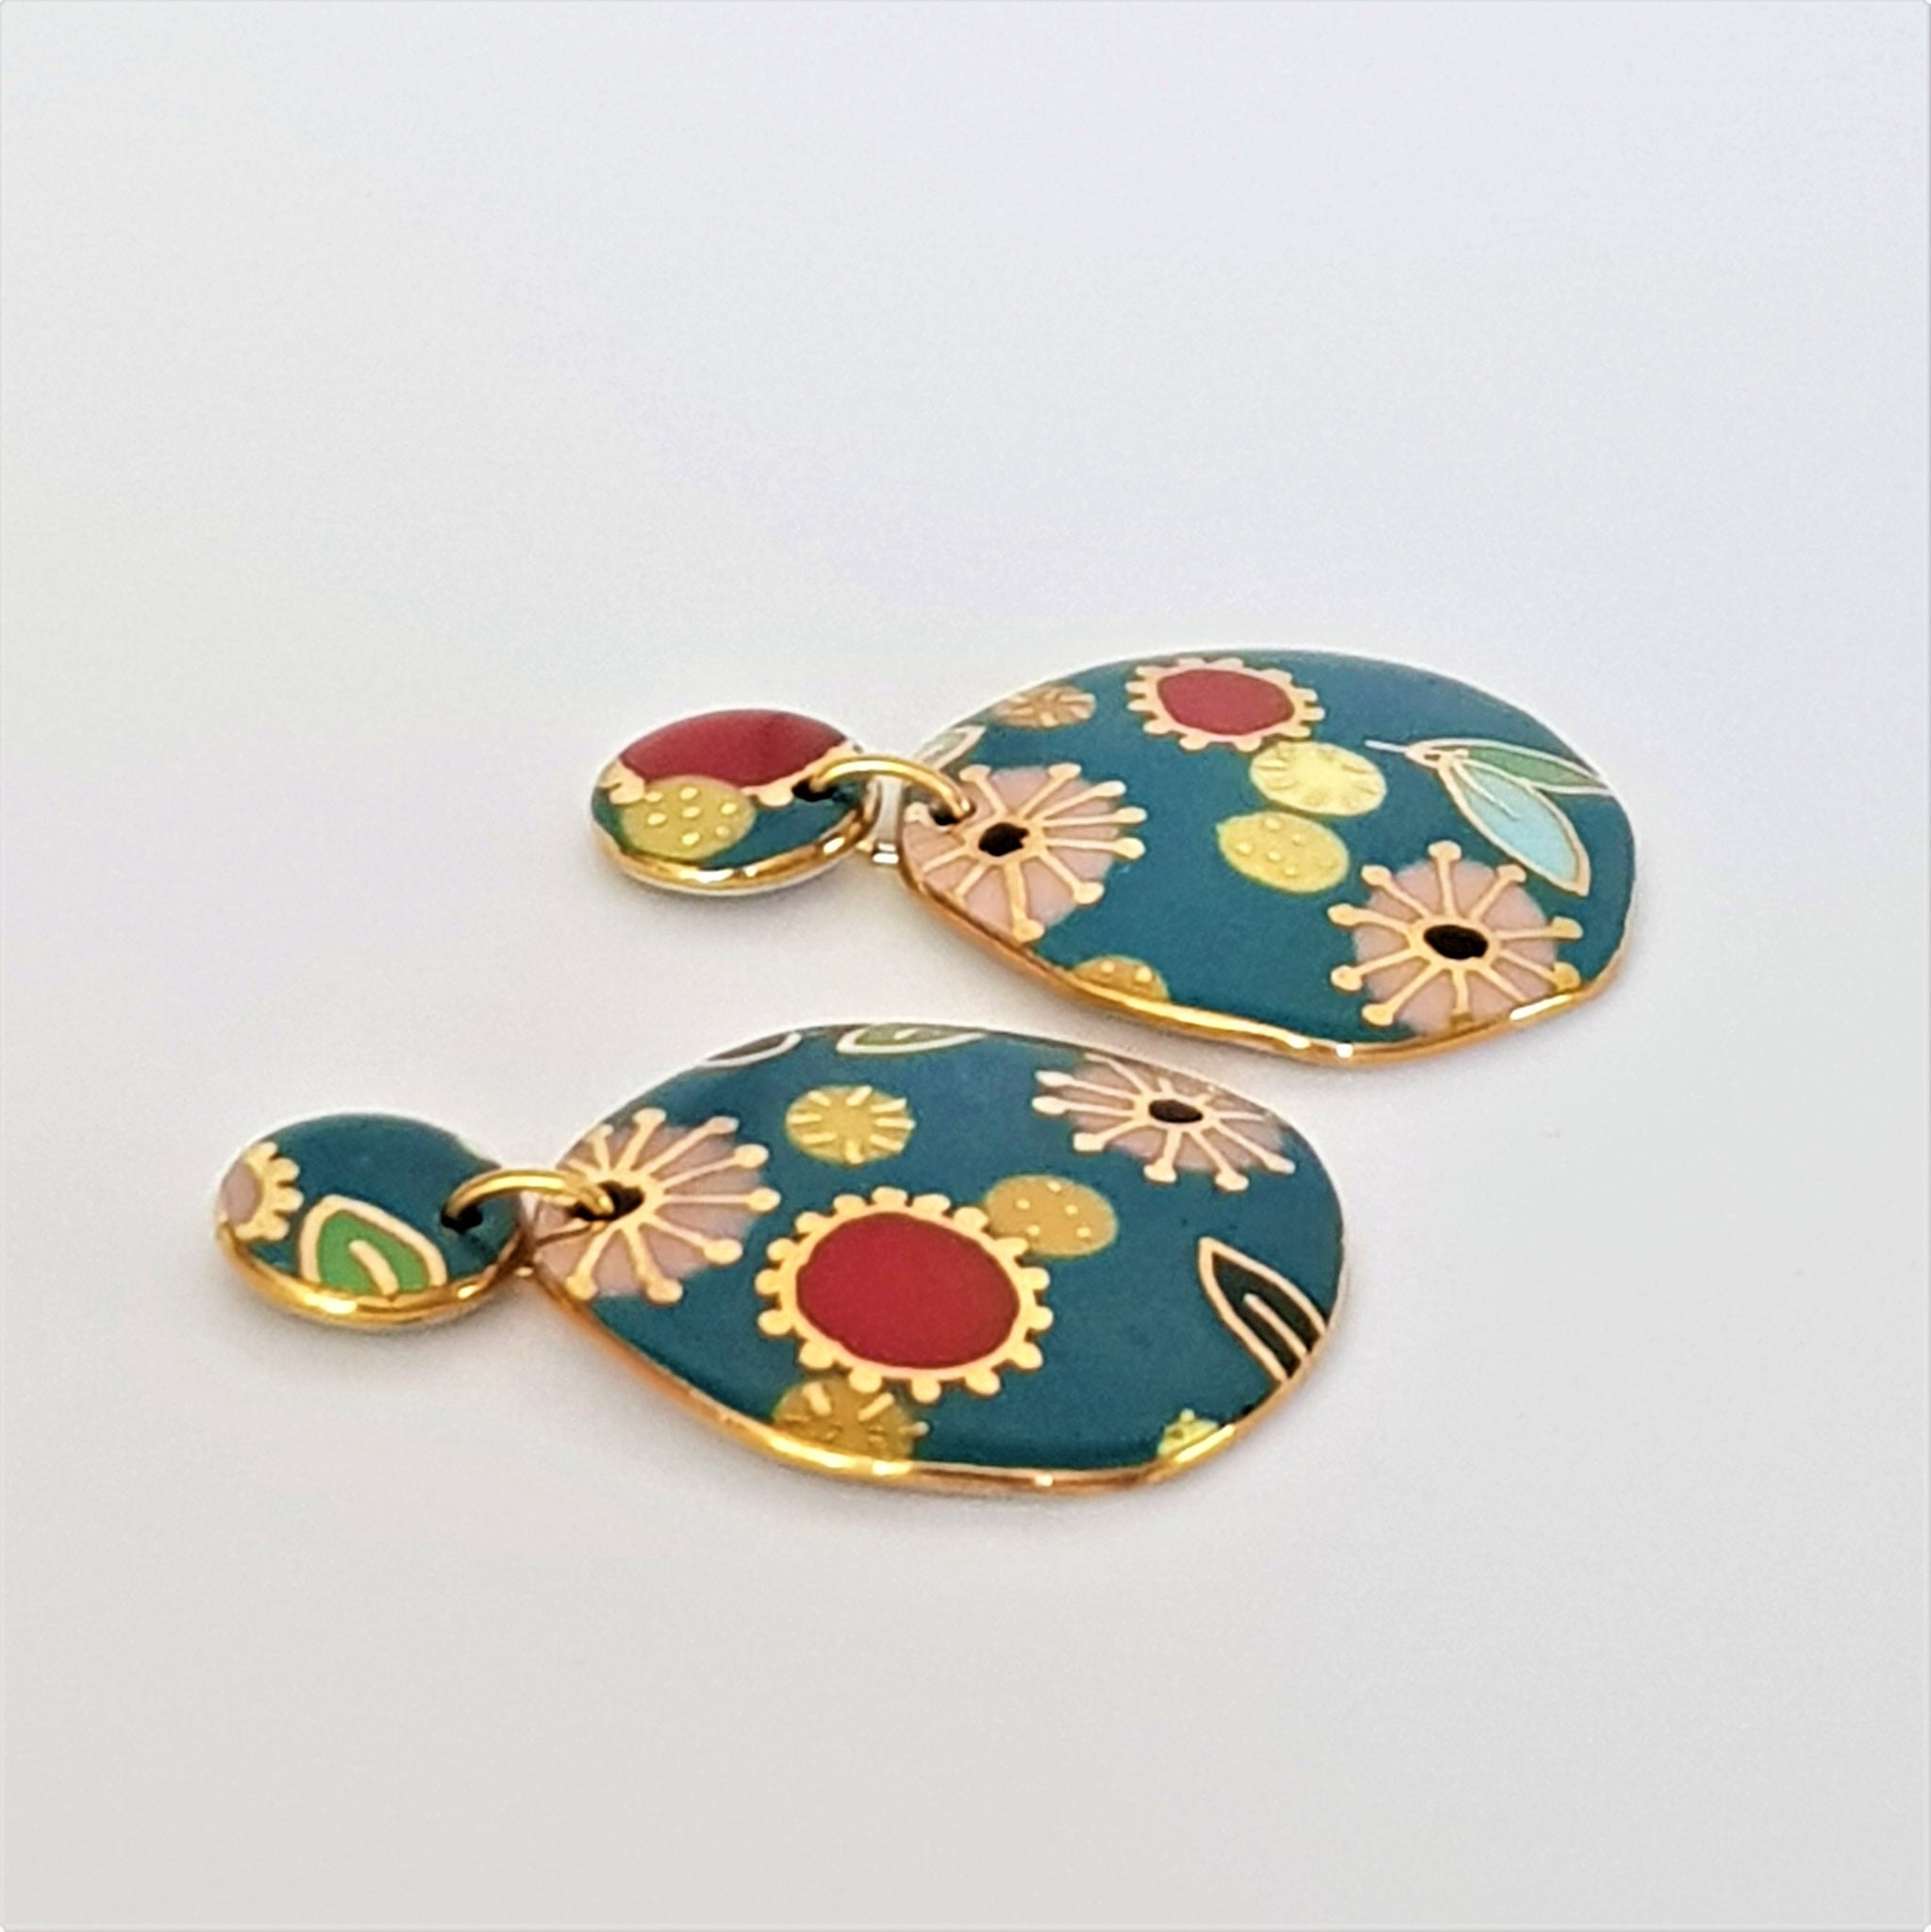 Turquoise double drop porcelain earrings with floral pattern and gold detailing.